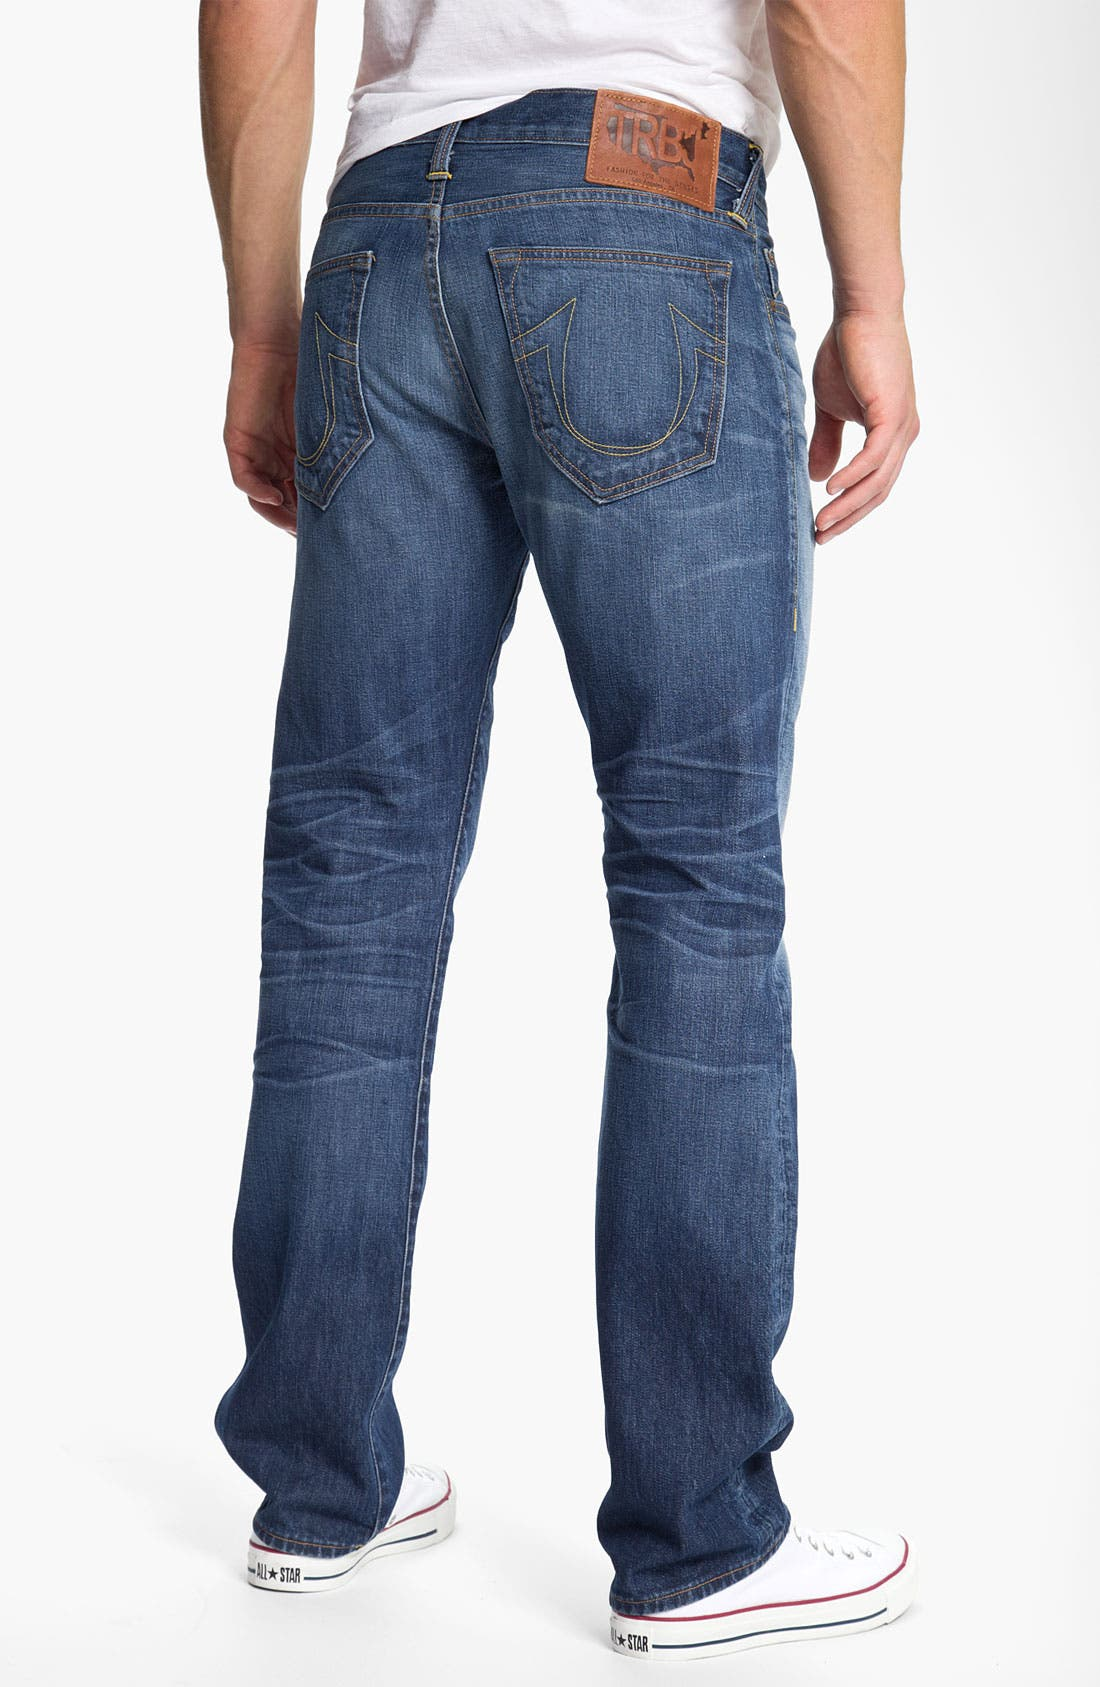 Alternate Image 1 Selected - True Religion Brand Jeans 'Bobby Phoenix' Straight Leg Jeans (Last Stand)